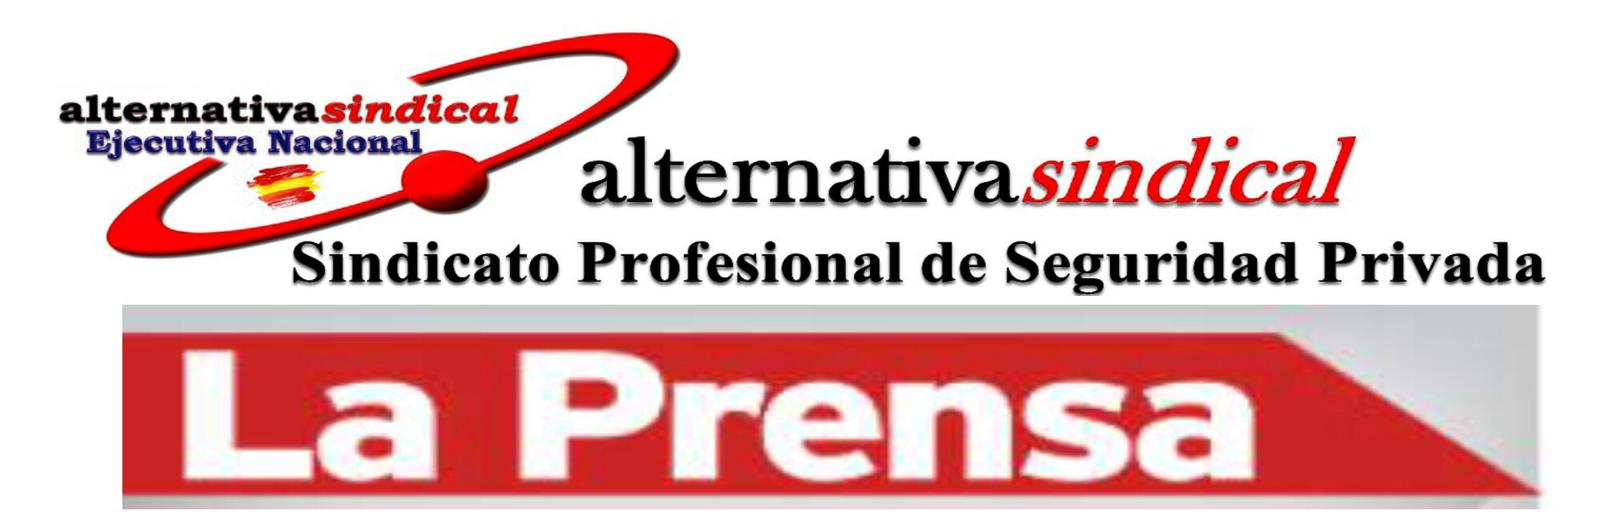 Prensa Alternativa Sindical